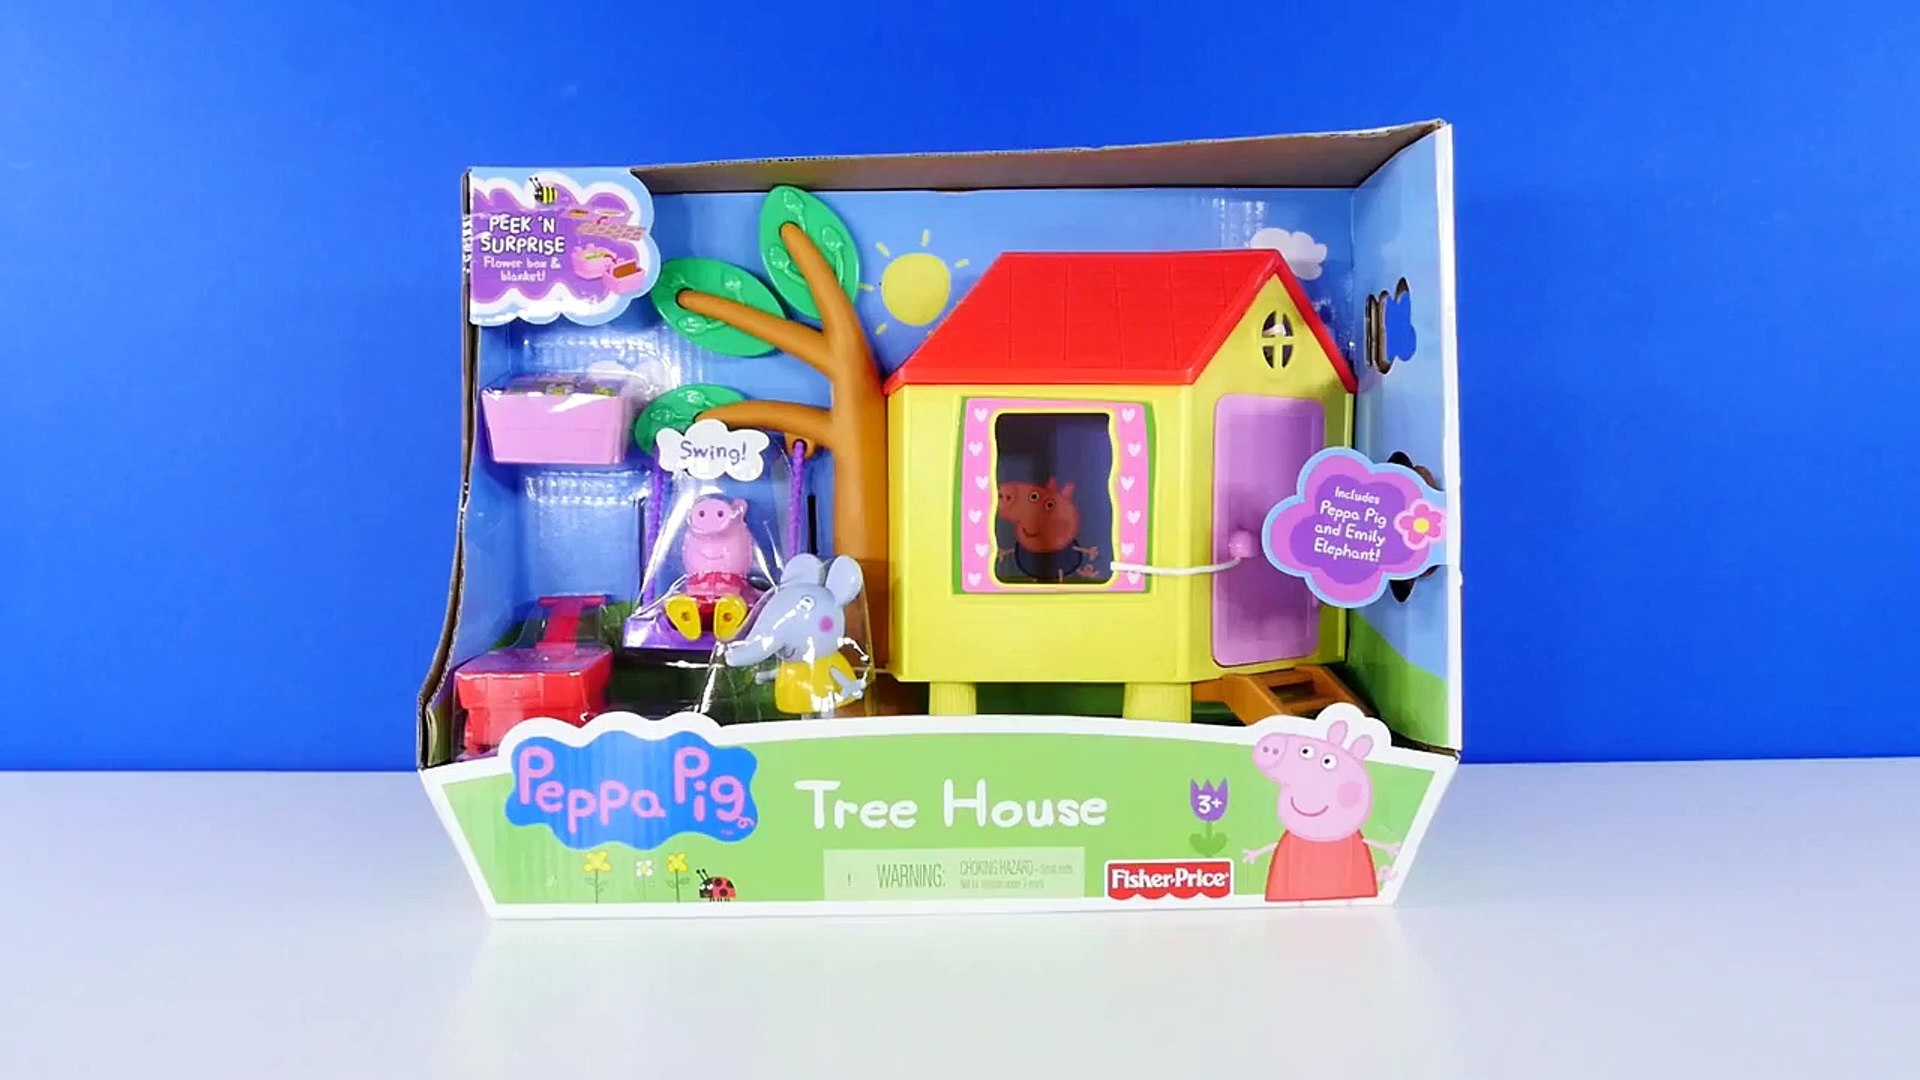 Peppa Pig Tree House Episodes With Peppas Friend Emily Elephant Peppapig Toys Dctc